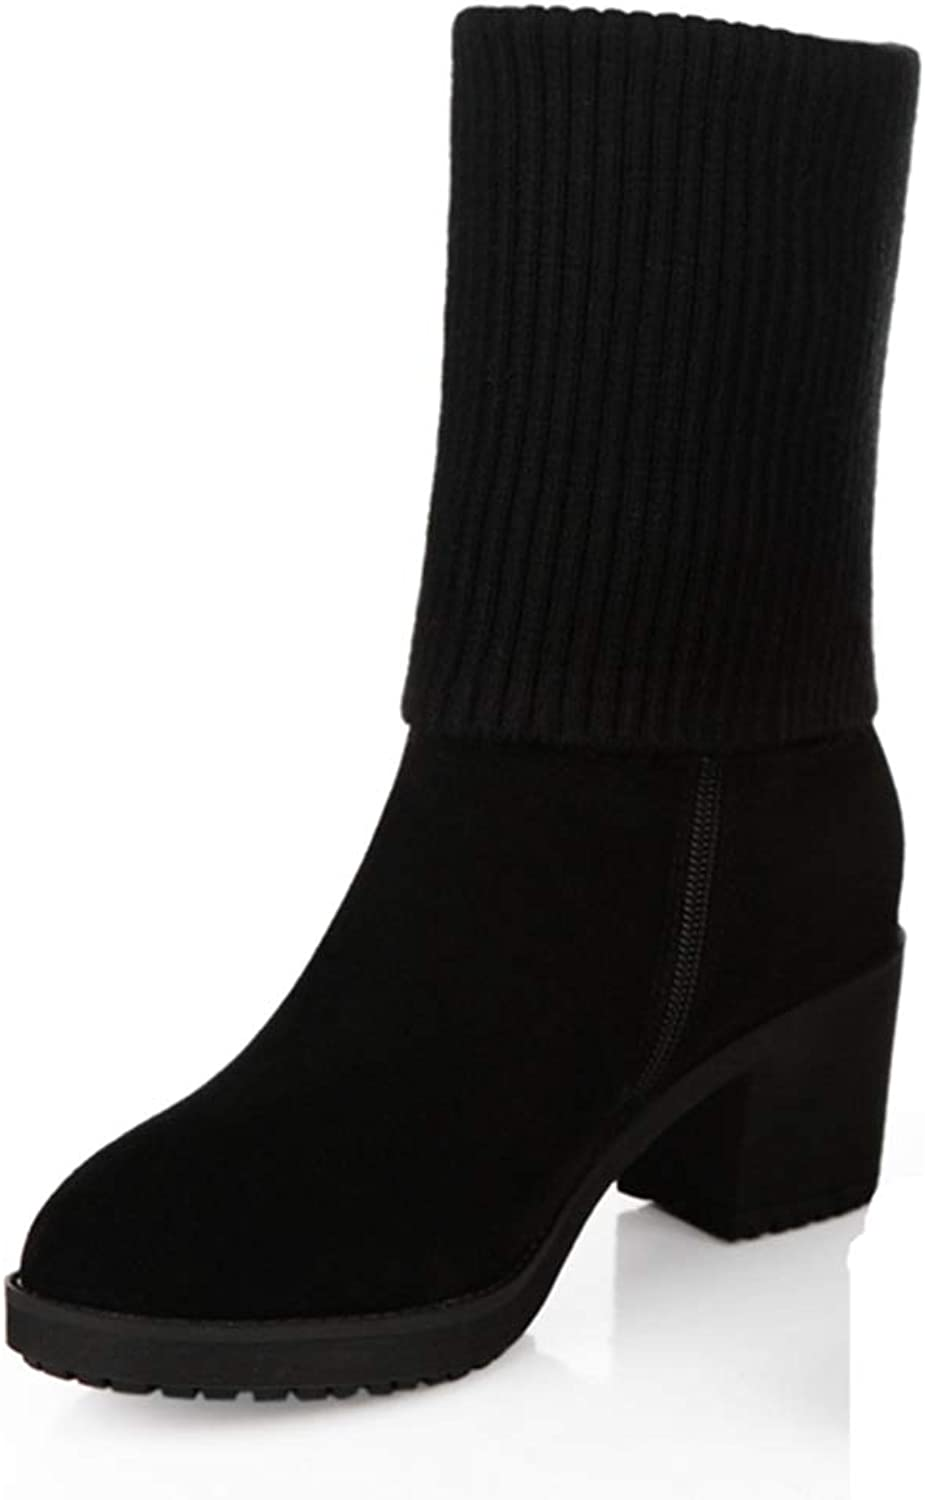 T-JULY Winter Women Nubuck Leather Stretch Knitting High Top Boots Thick Heel Mid Calf Boots with Plush Woman Warm shoes